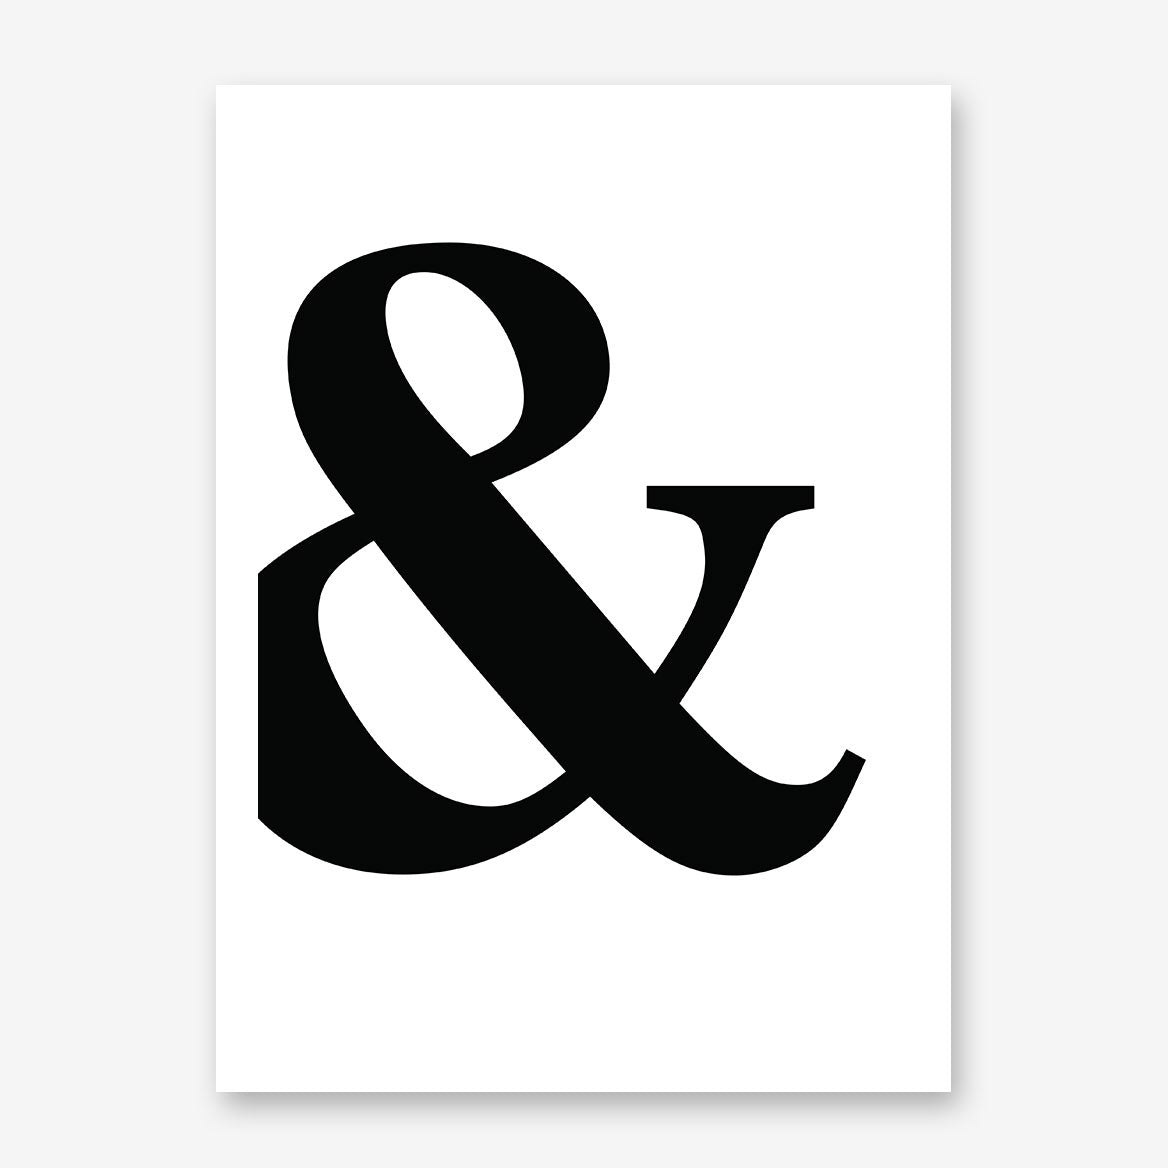 Poster print with black '&' ampersand symbol